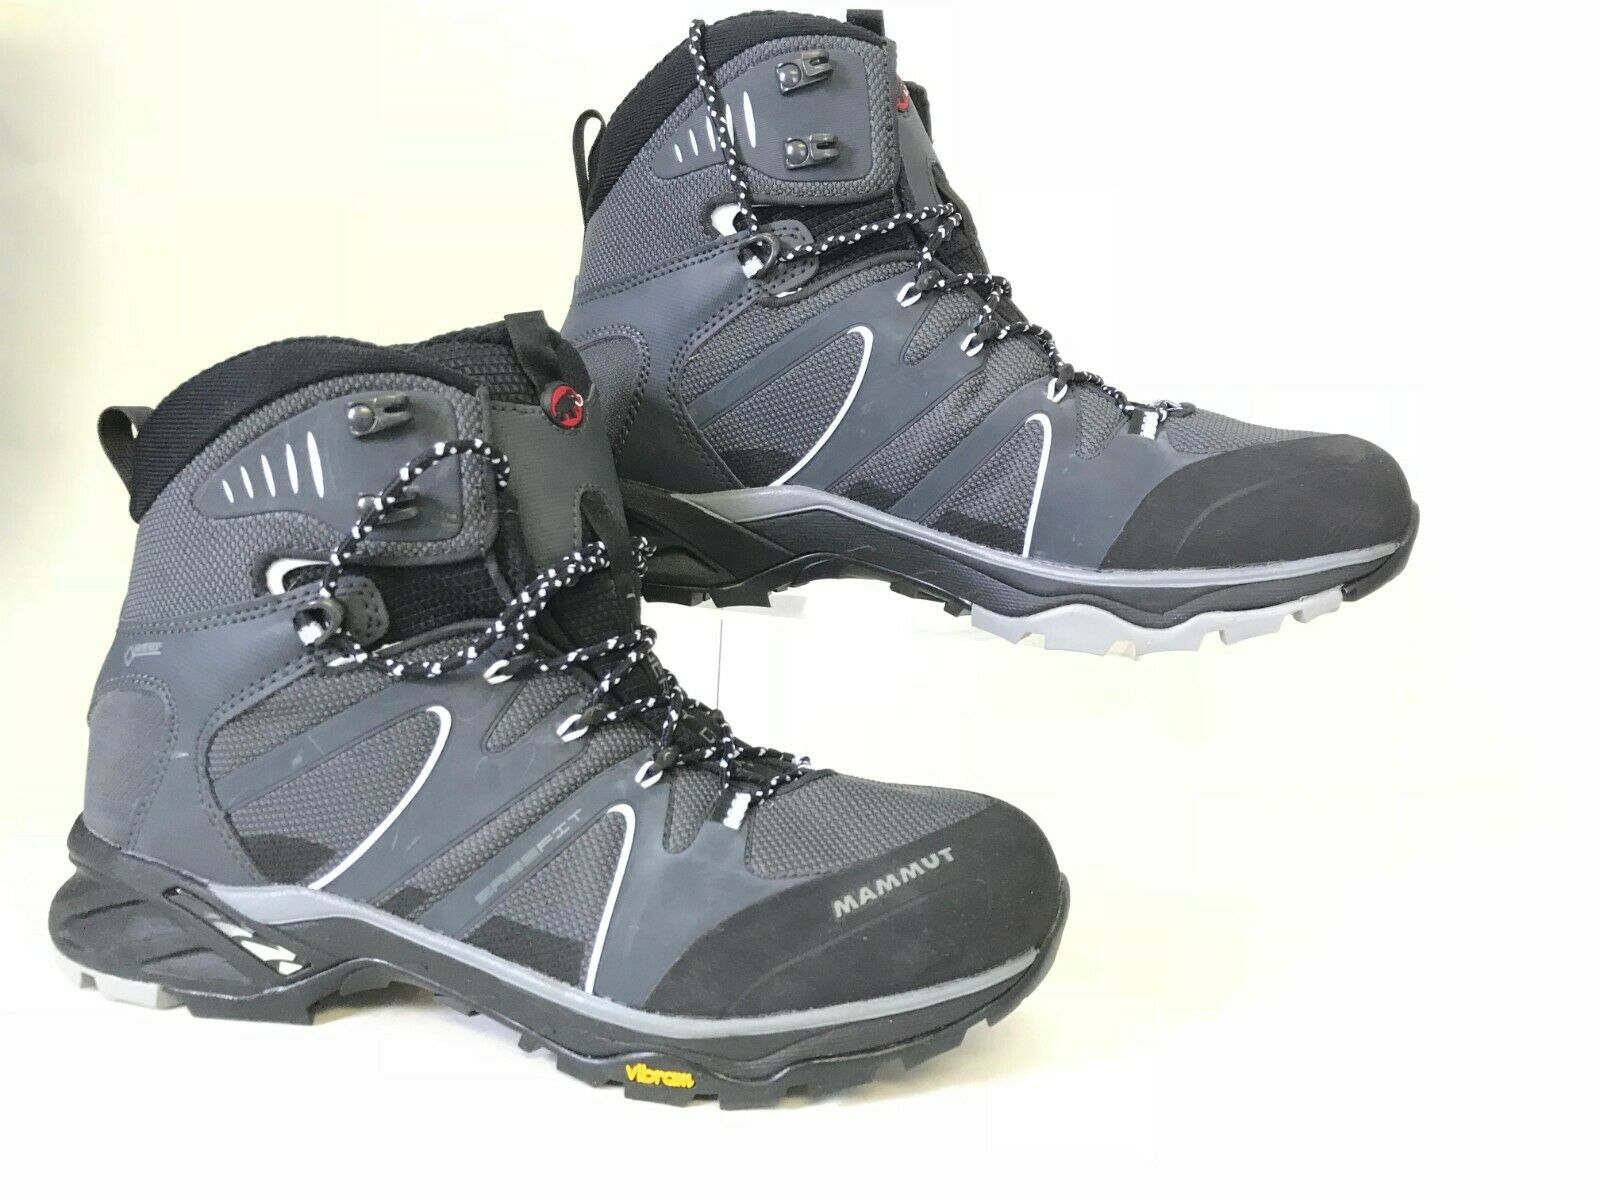 NEW Mammut T Aenergy GTX Trekking shoes, Walking Boots for Ladies 10.5 Gore-Tex